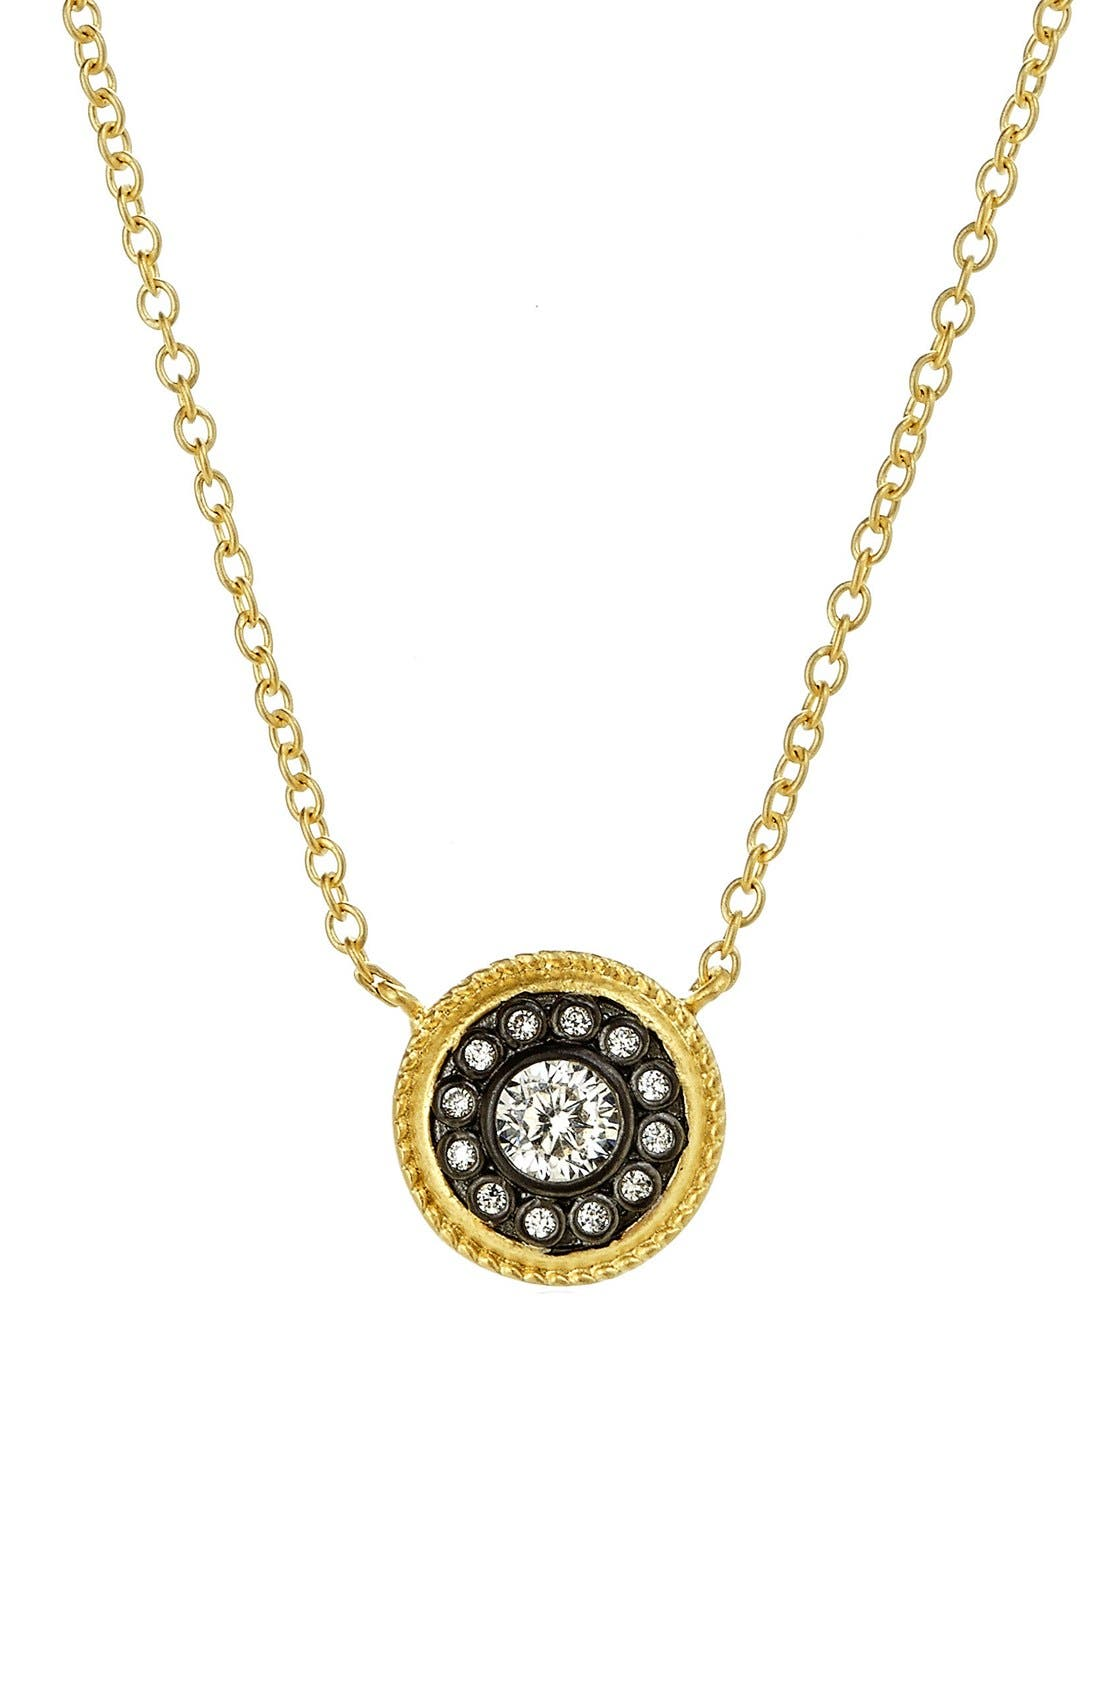 Alternate Image 1 Selected - FREIDA ROTHMAN 'Hamptons' Nautical Button Pendant Necklace